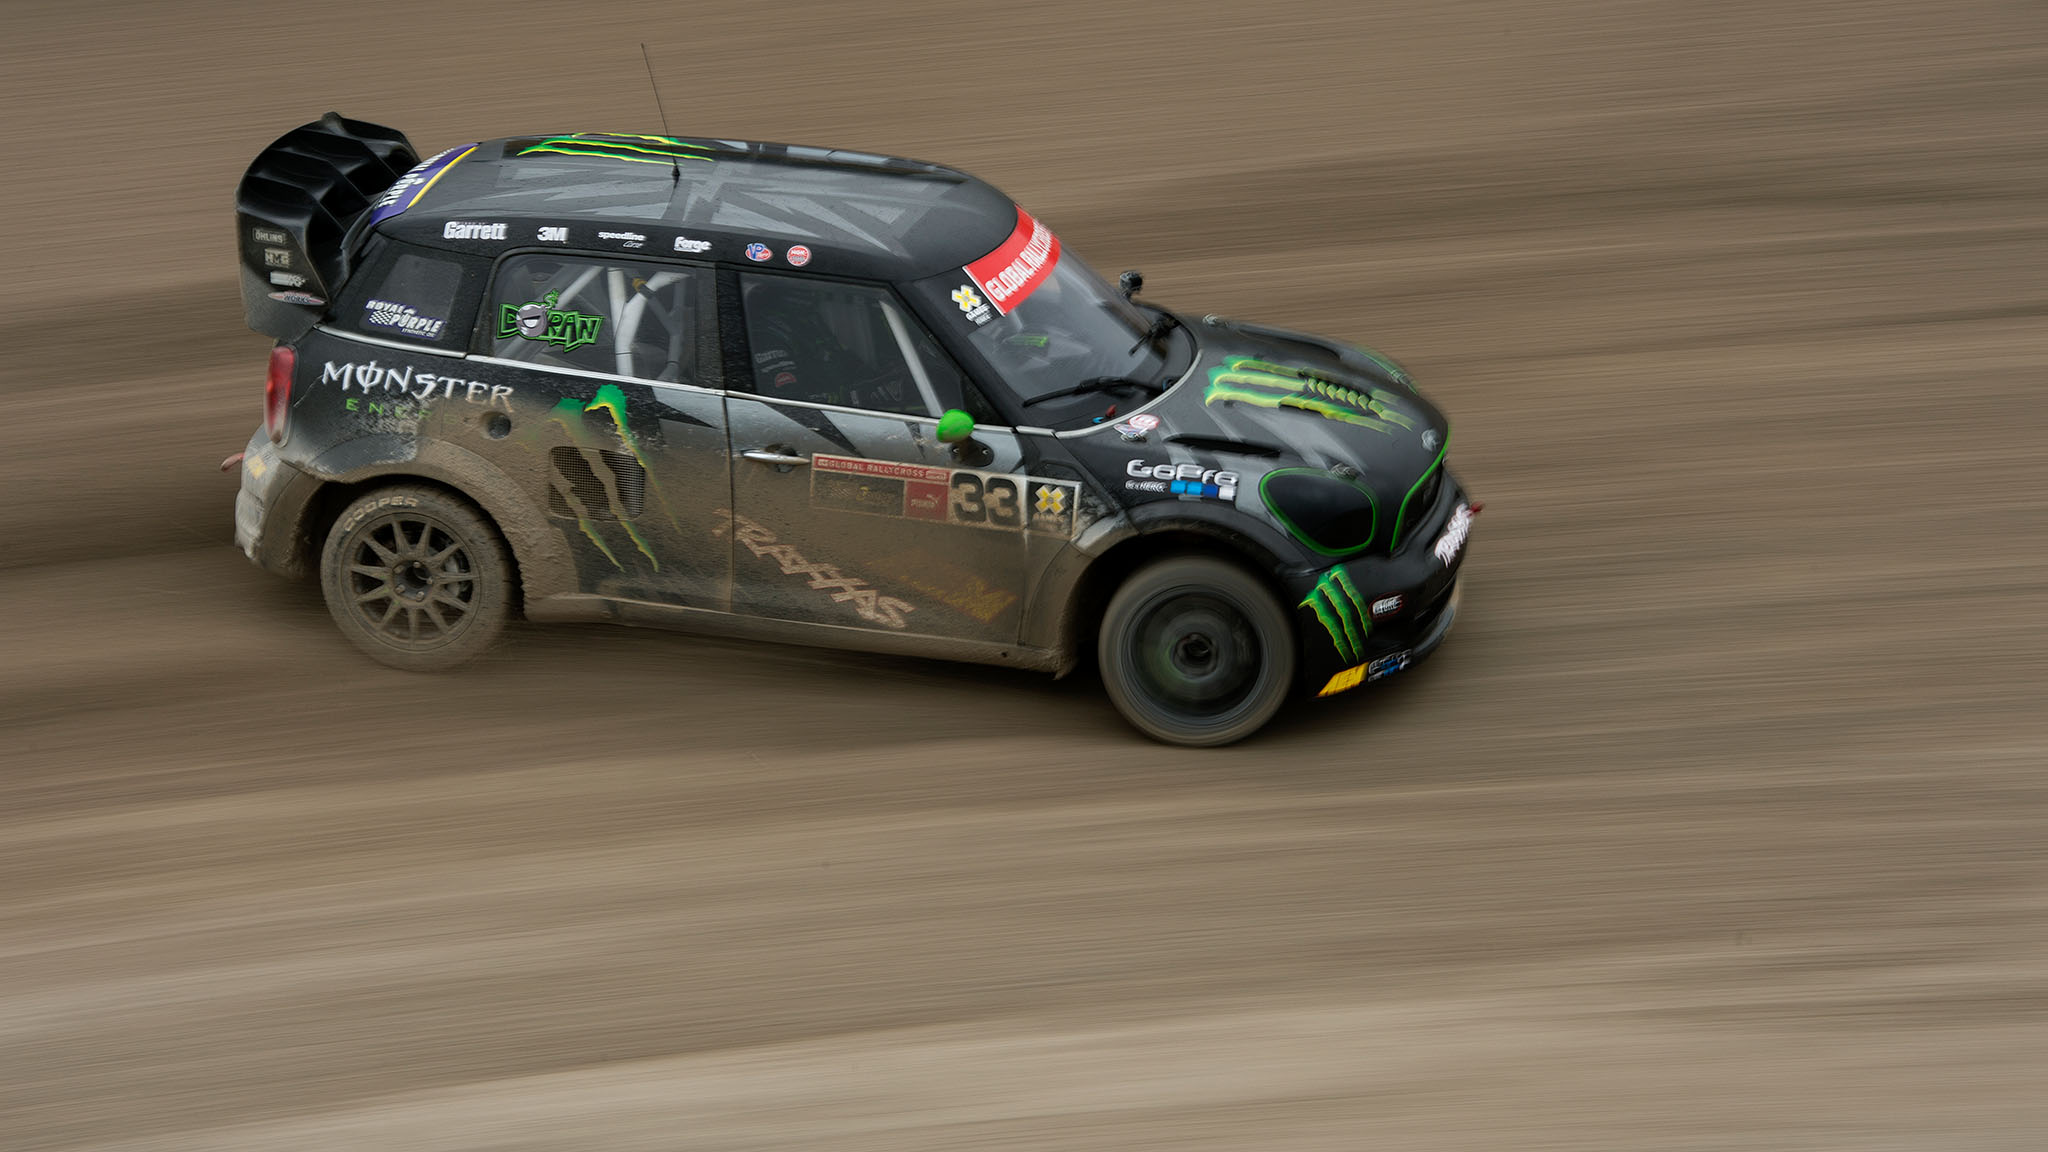 Liam Doran races his Mini to victory Saturday at X Games Munich despite puncturing a tire in the fourth lap. Lets say the wet conditions and the track design was working in favor for my car, Doran said.